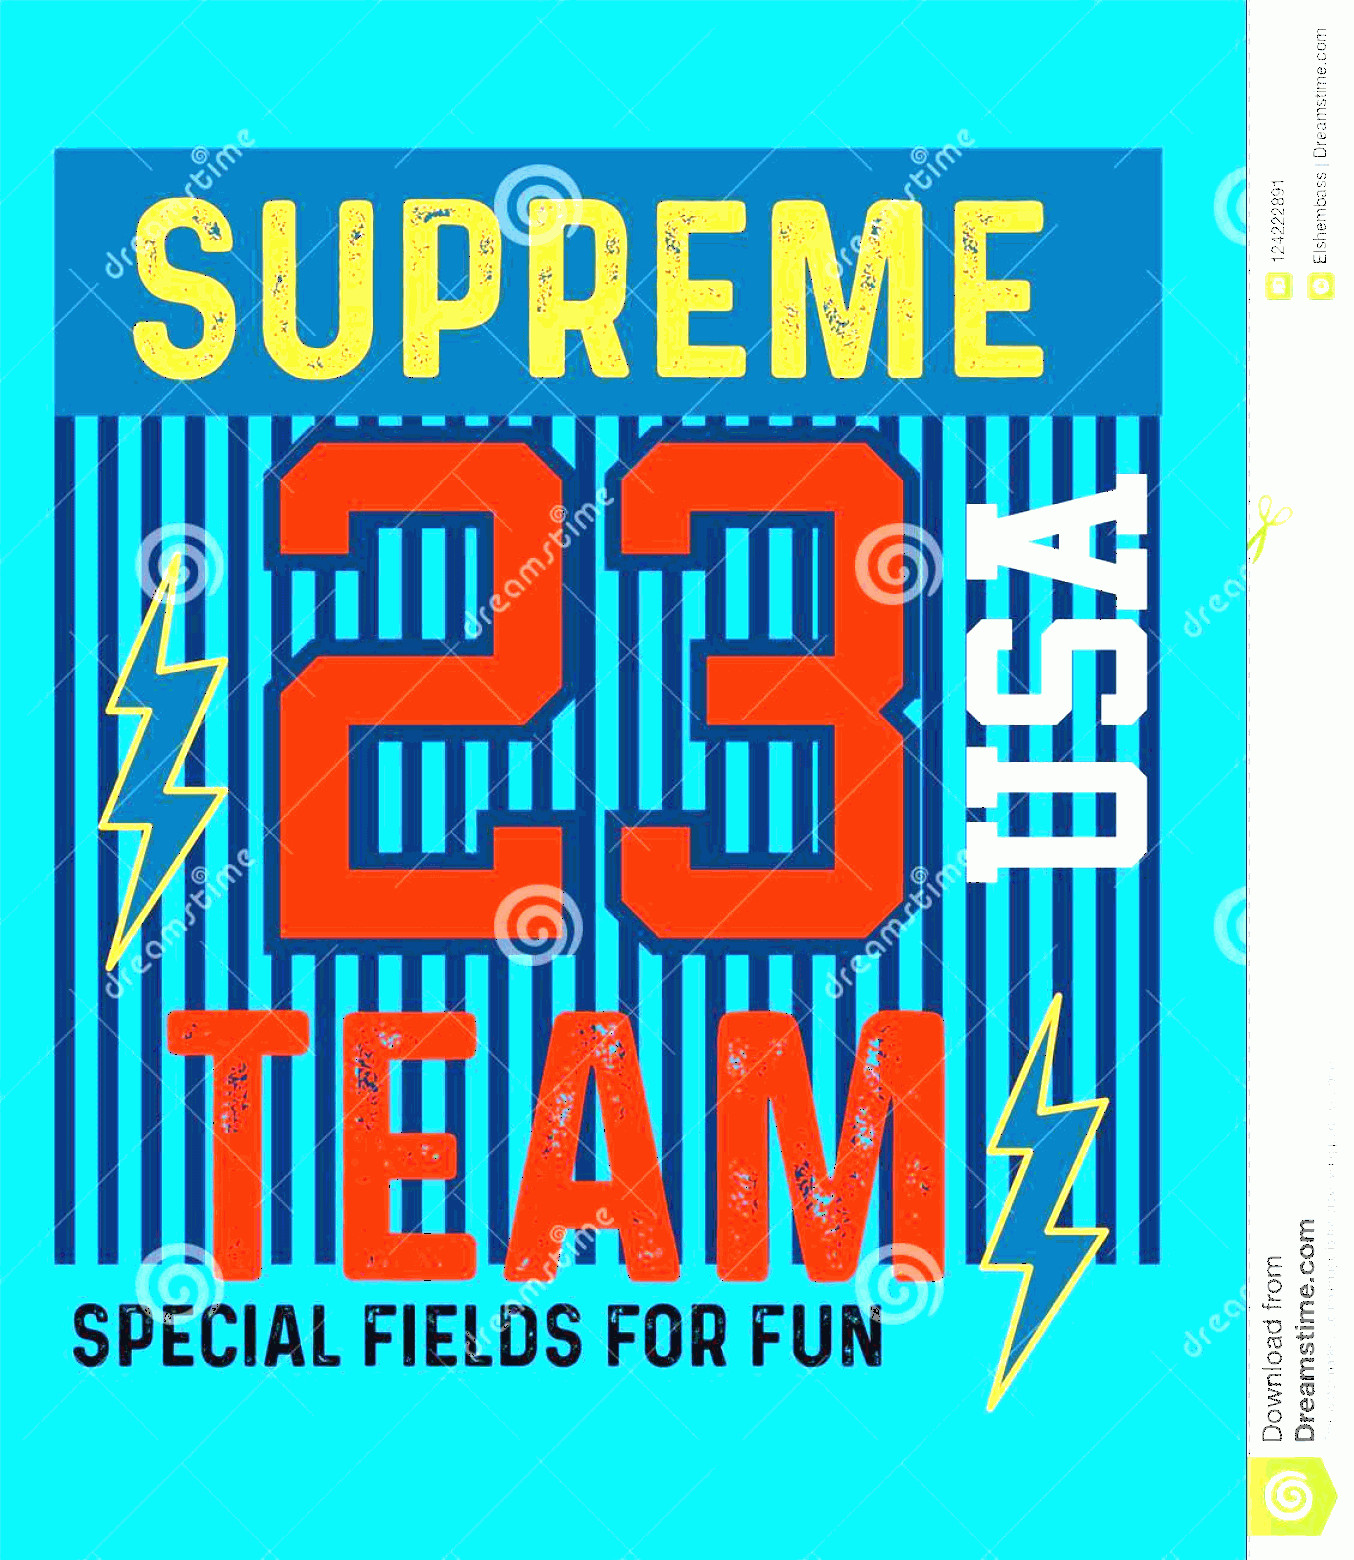 Supreme Vector T-shirt: Usa Supreme Team T Shirt Design Vector Illustration Cool Kids Boys Made Creativity Love Image